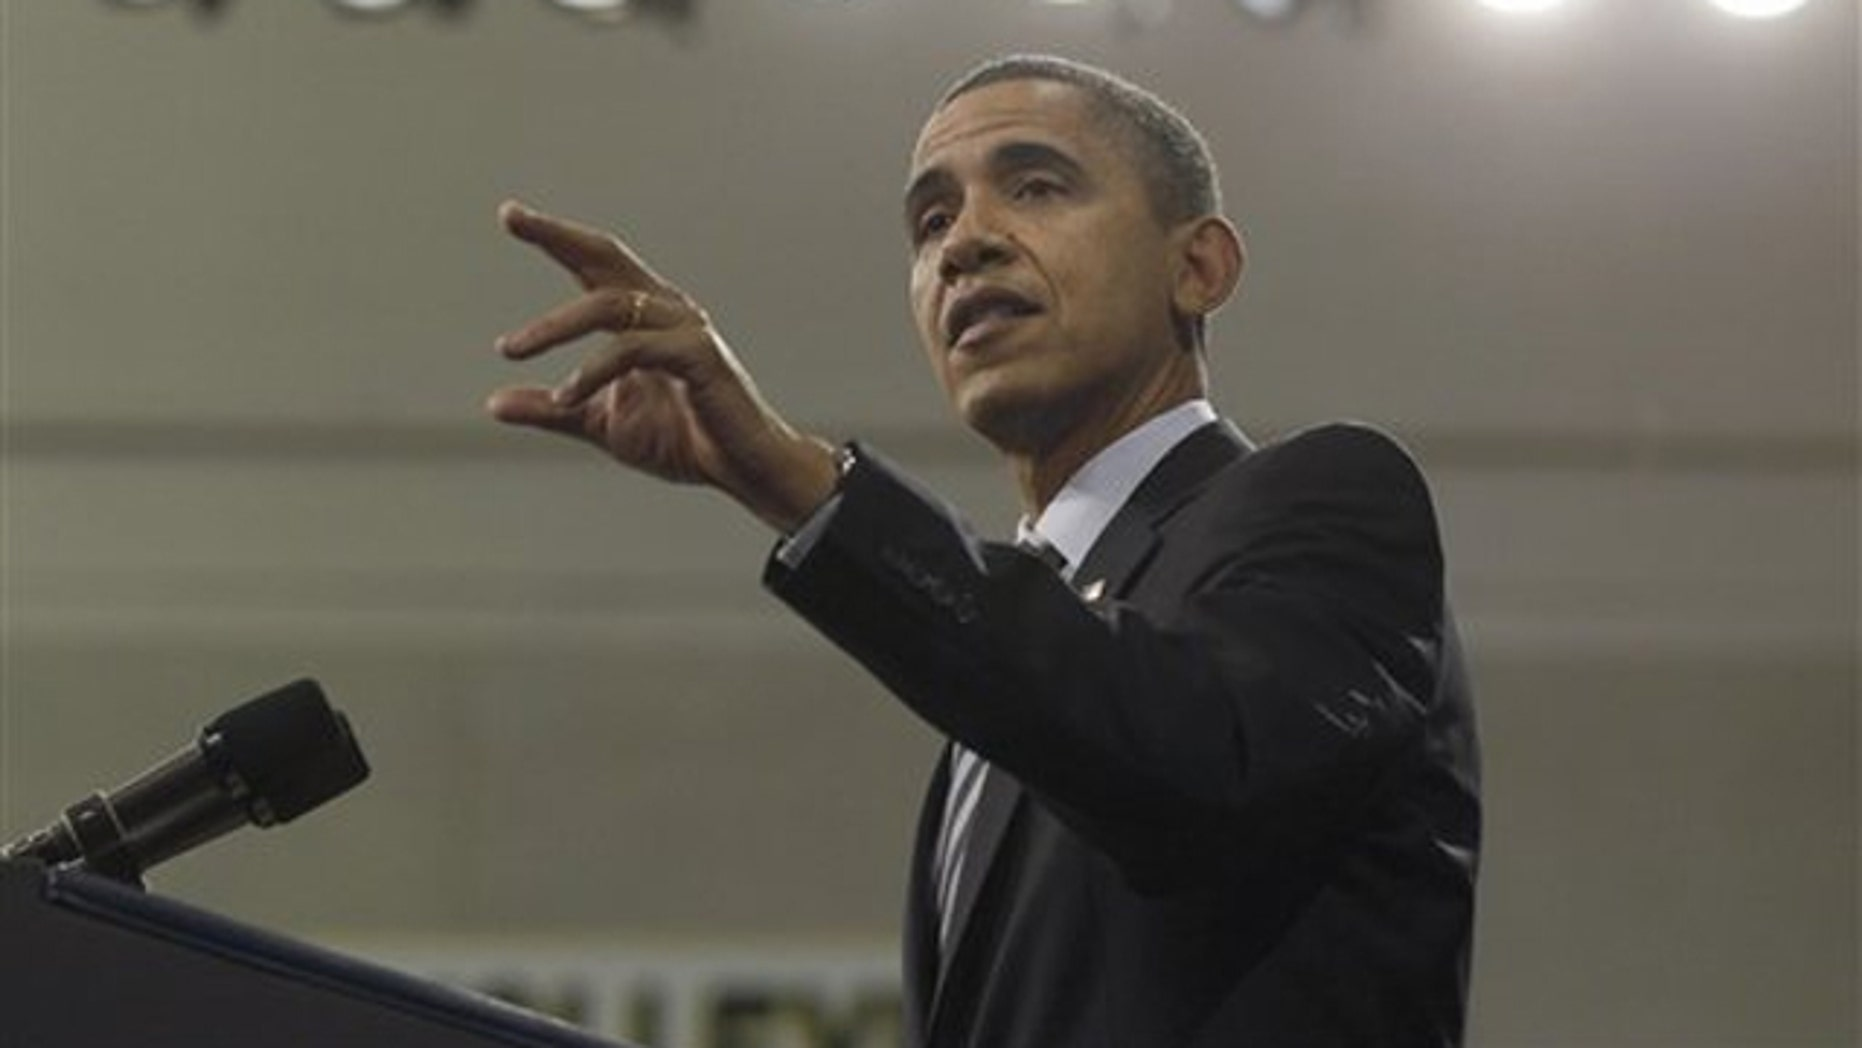 President Obama speaks at Northern Michigan University in Marquette, Mich., Feb. 10.